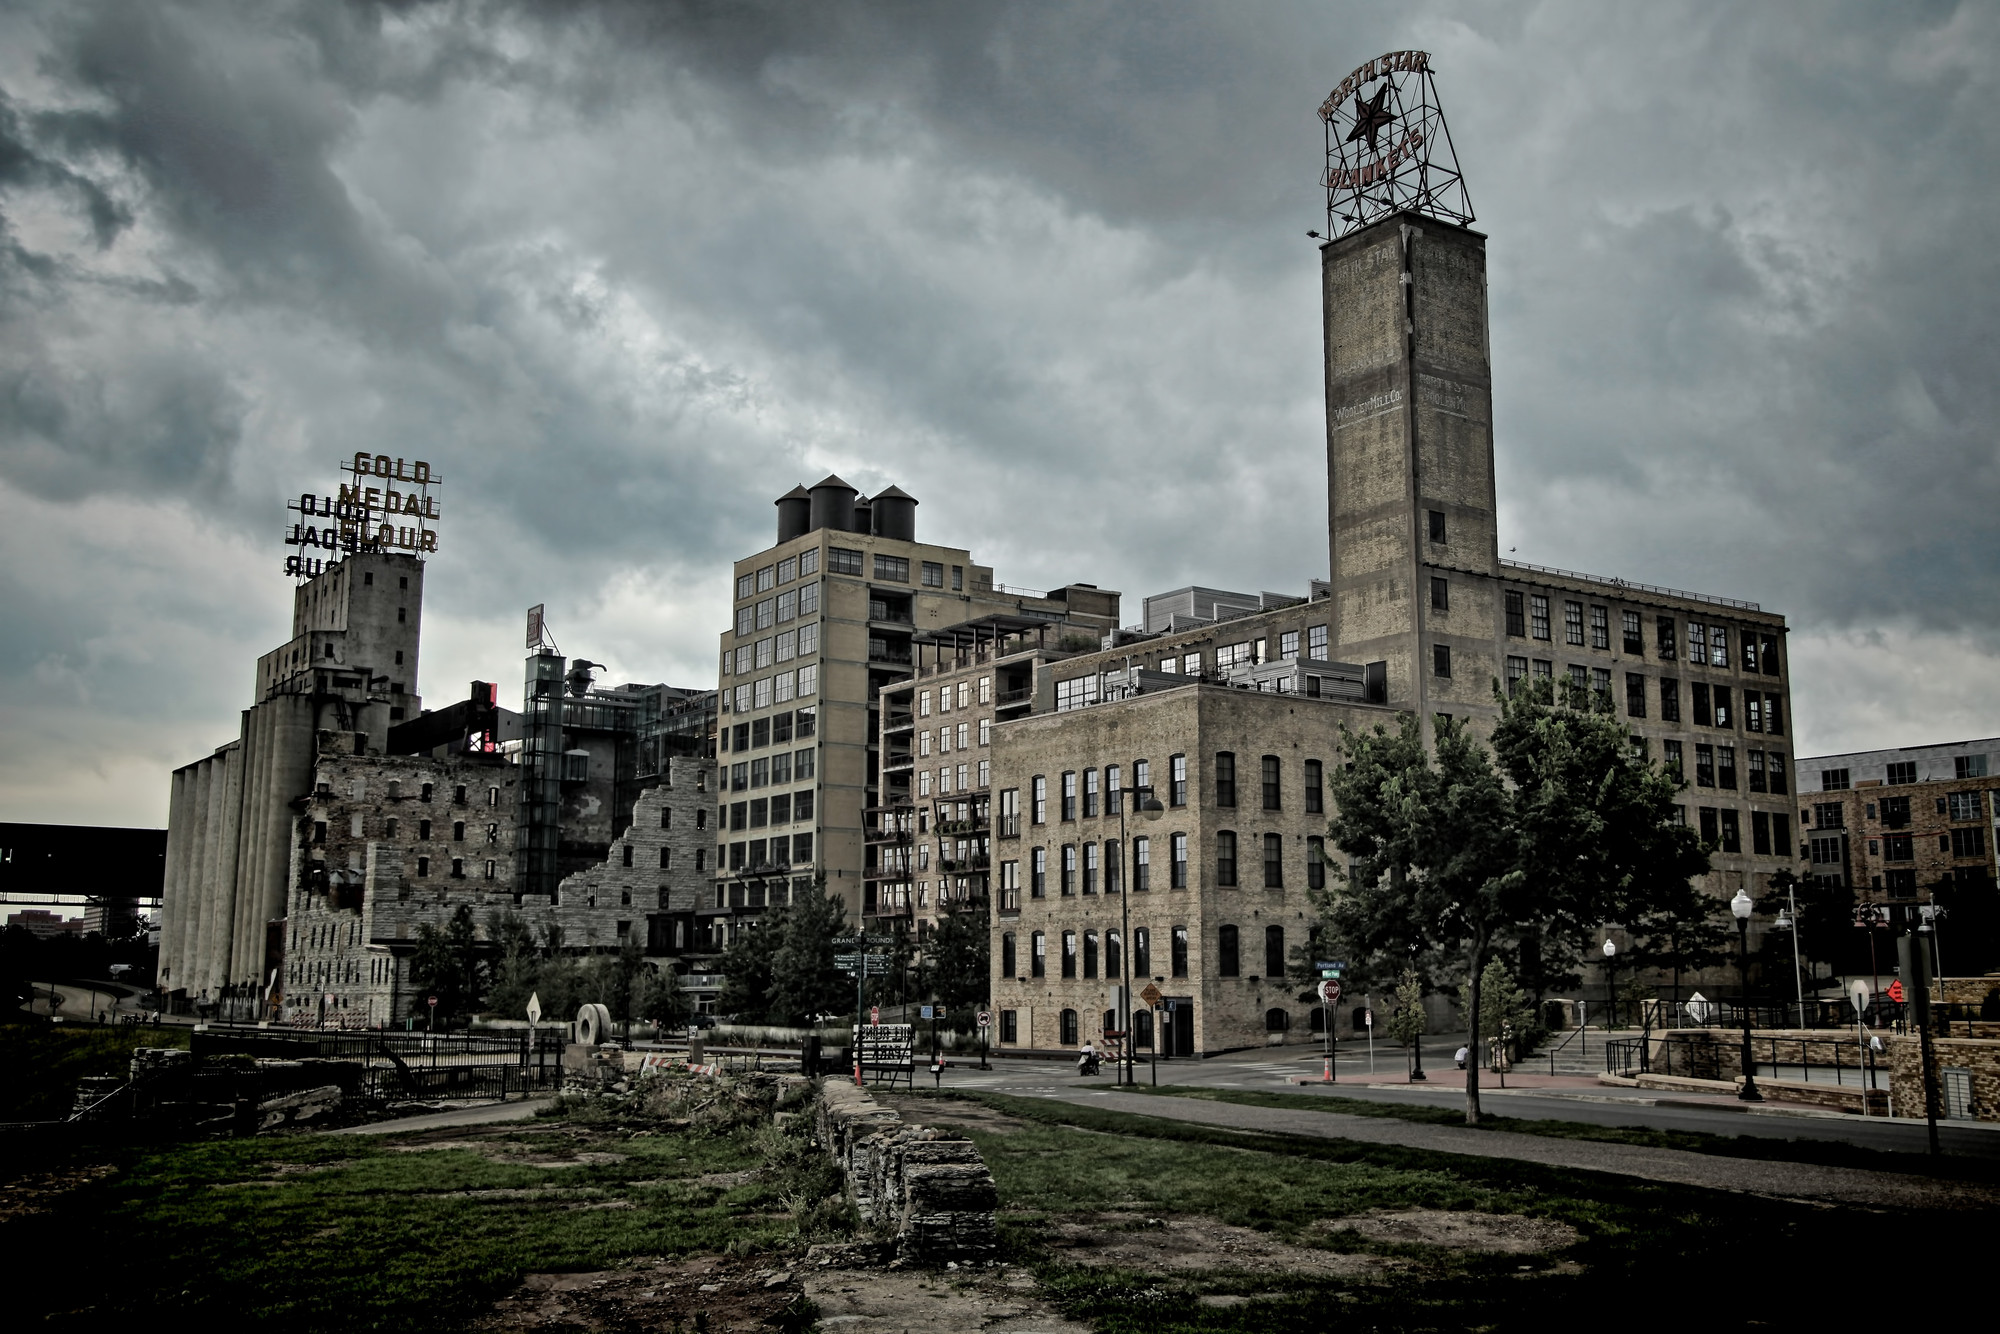 Beyond Ruin Porn: What's Behind Our Obsession with Decay?, Historic mill city ruins in downtown Minneapolis. Image Courtesy of Flickr CC License / Joey Lax-Salinas